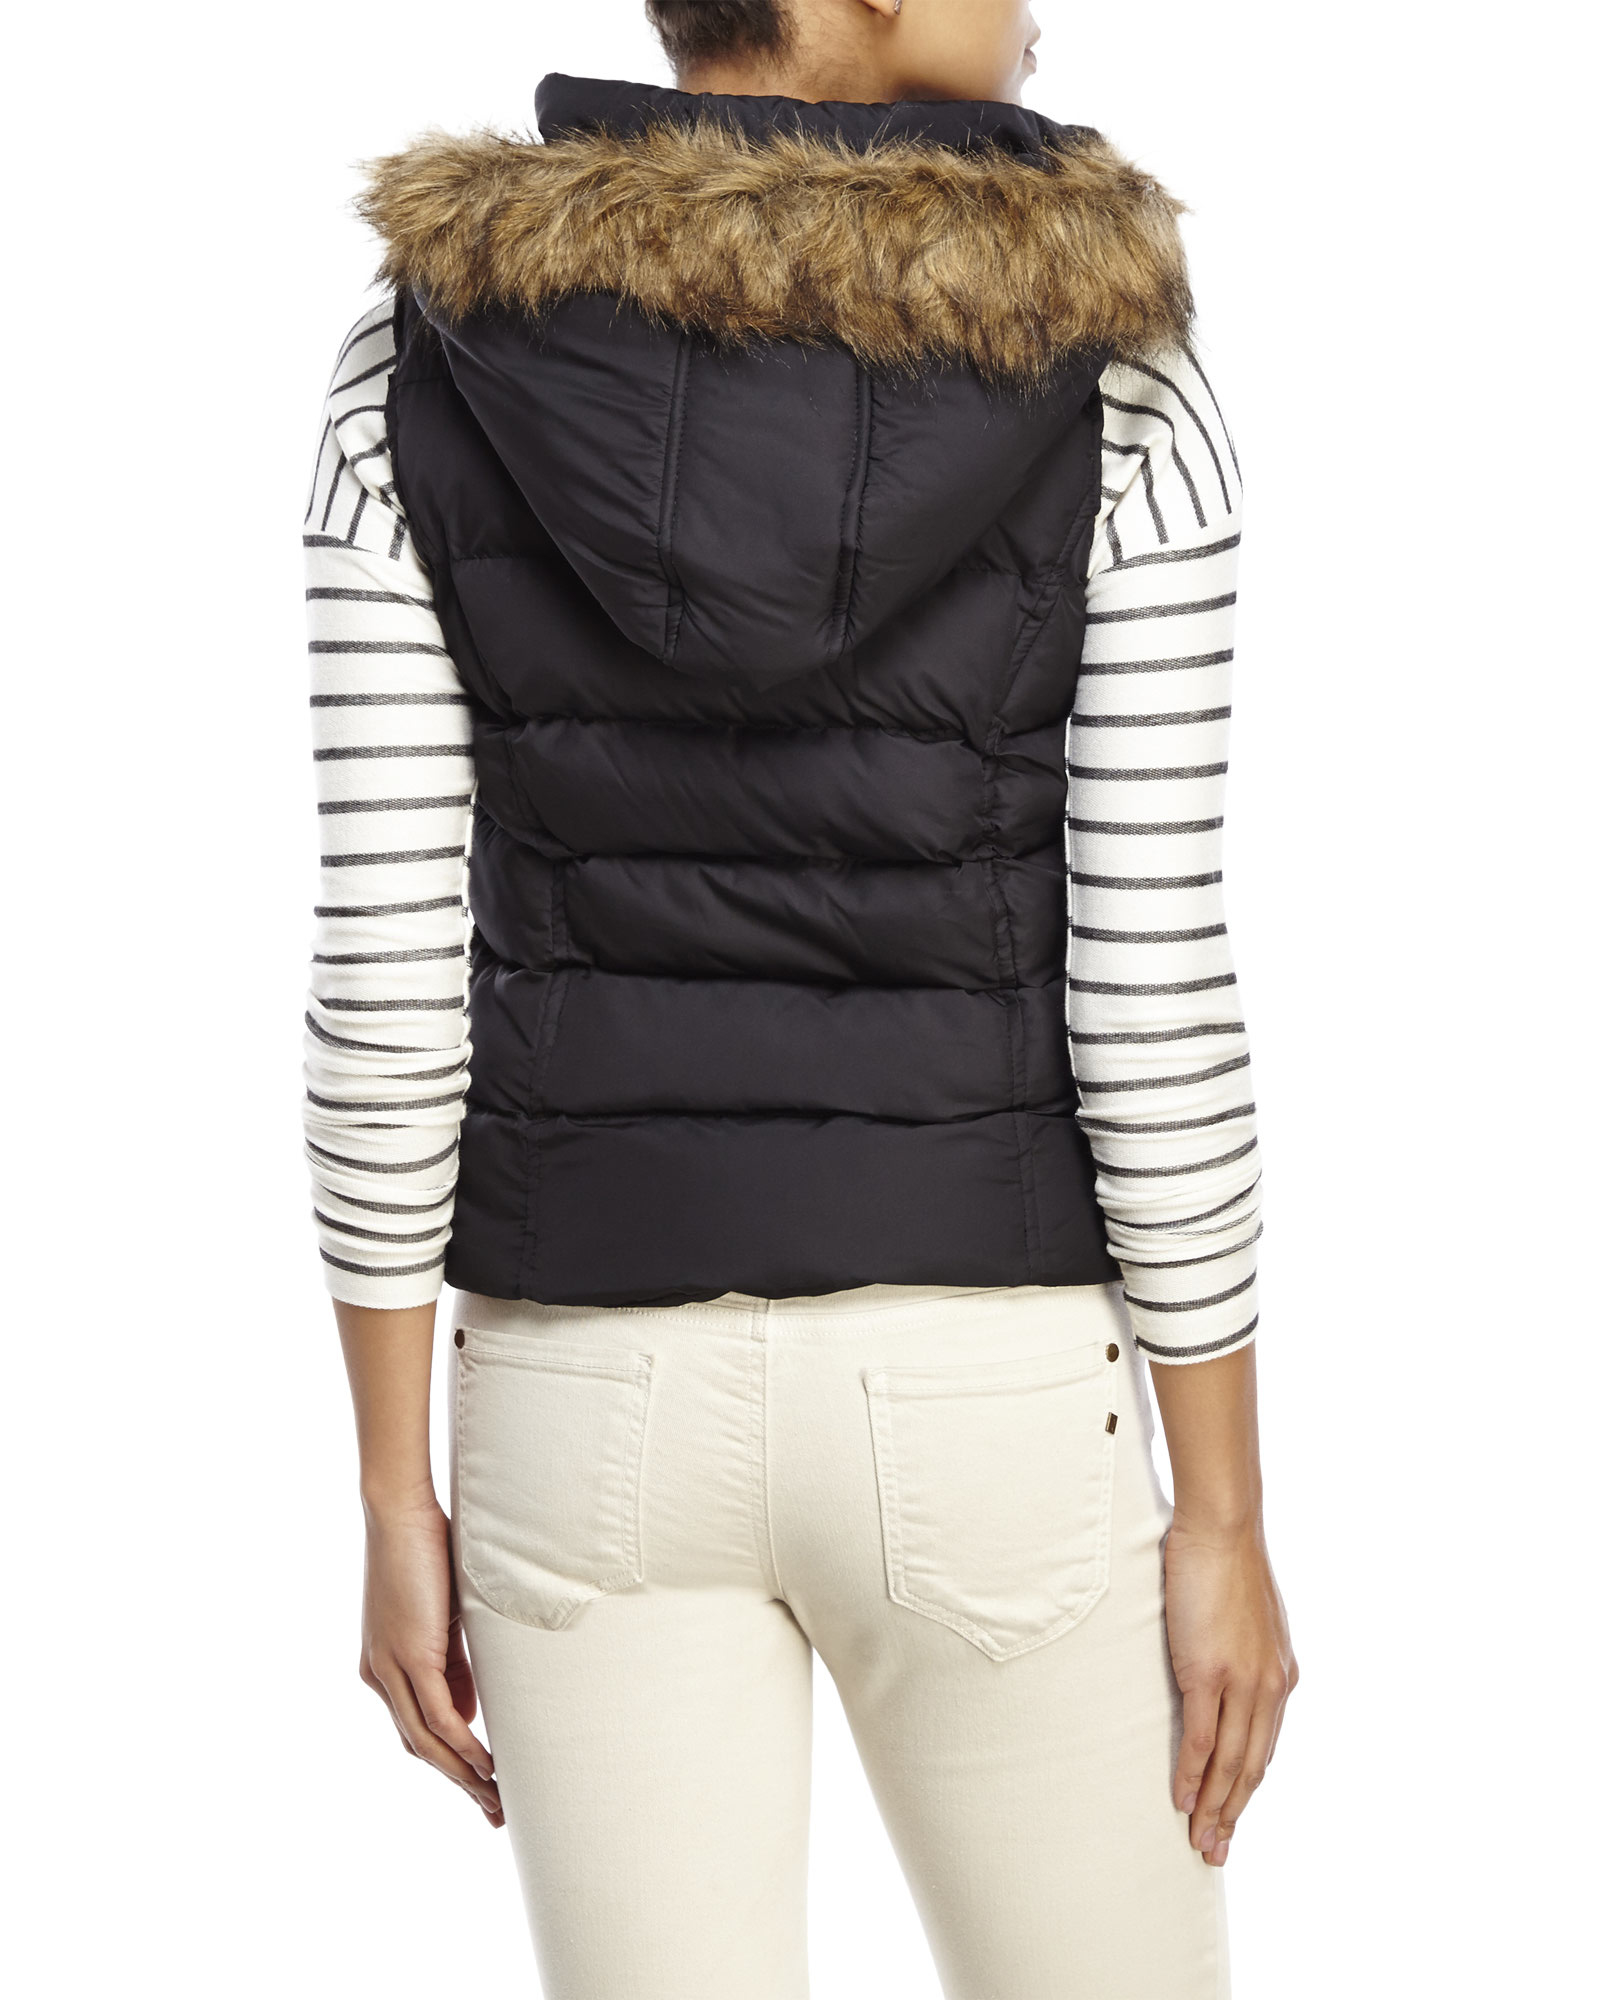 Versatile Puffer Vests Typically quilted with a smooth shell, puffer coats offer cozy linings, sometimes fleece, and performance insulation. More body conscious than a parka, this jacket is the perfect choice for casual events and running around town.